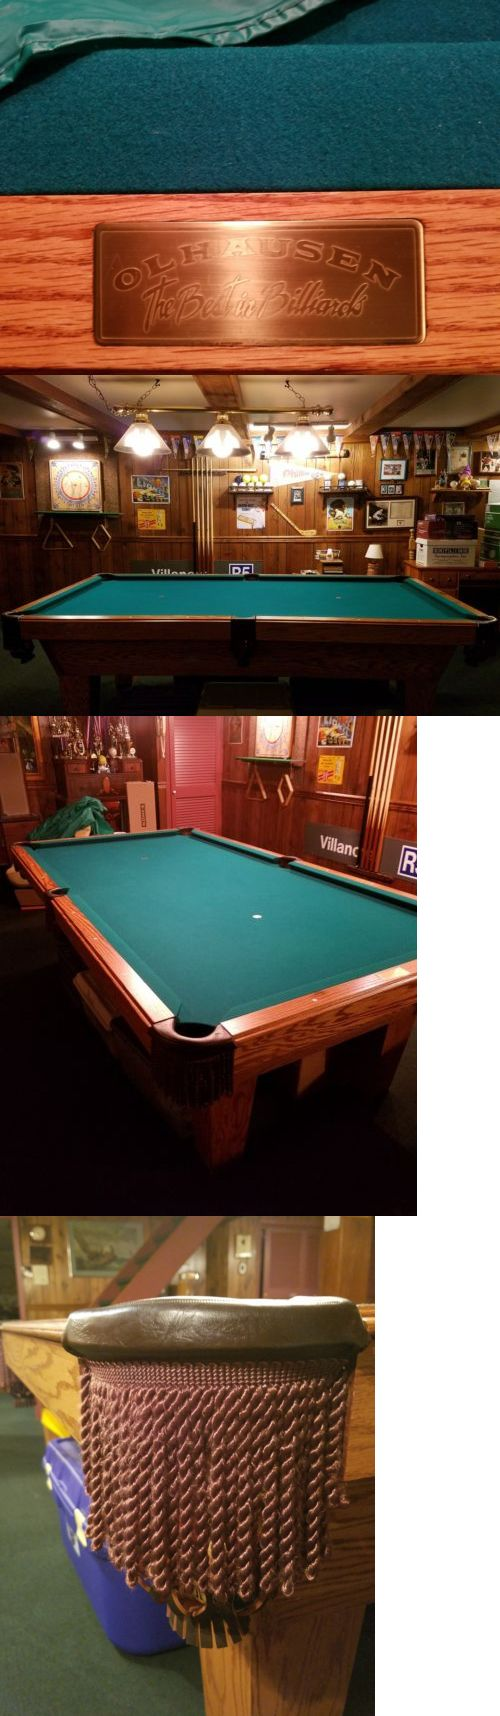 Tables 21213: Olhausen Pool Table, Pool Table -> BUY IT NOW ONLY: $1575 on eBay!